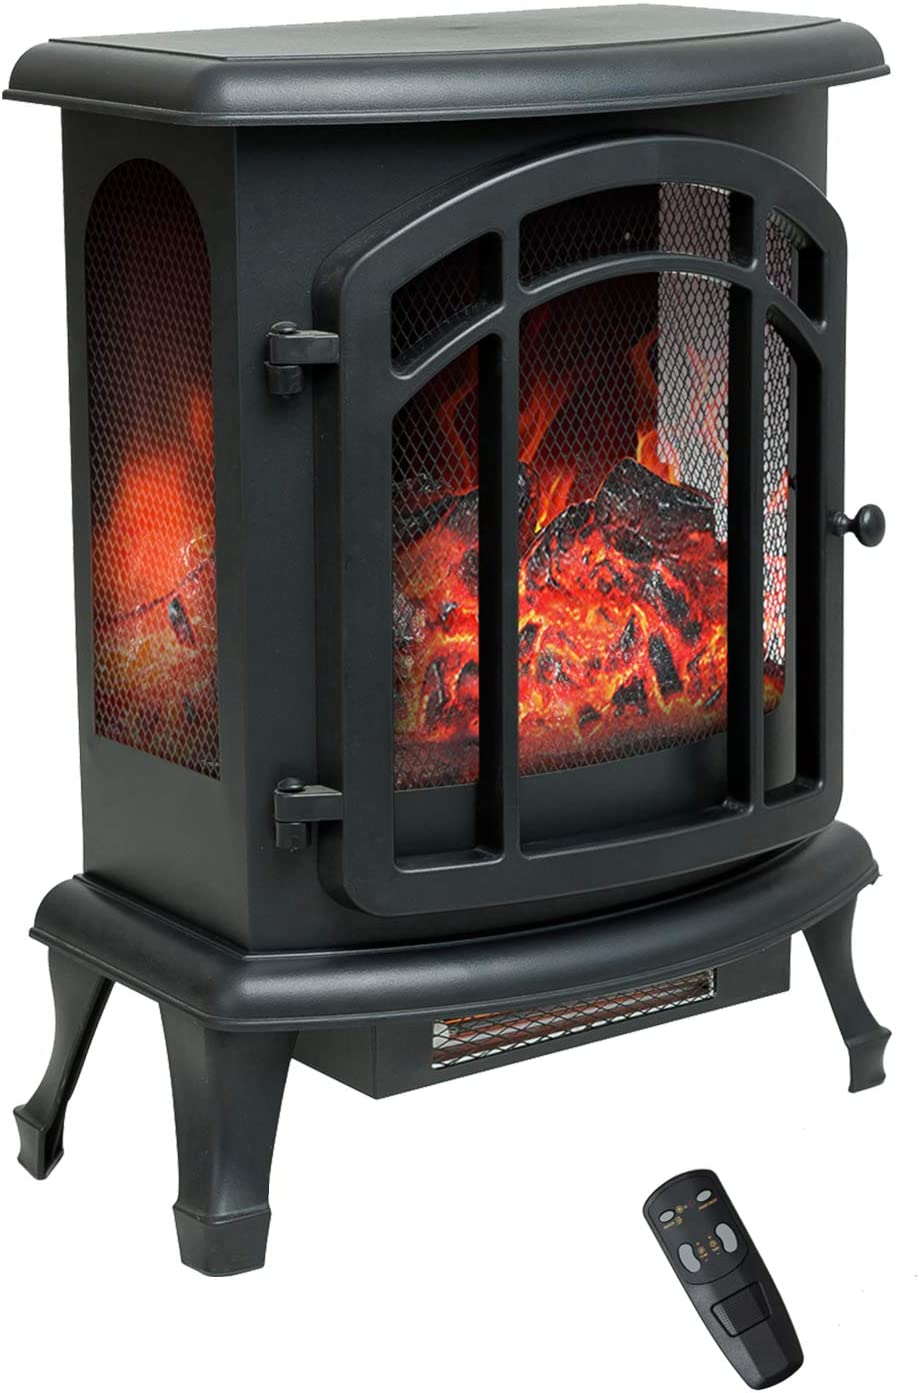 Flame Shade 24 Inch Electric Fireplace Wood Stove Portable Freestanding Indoor Space Heater With Remote Timer 1500 750w Kitchen Dining